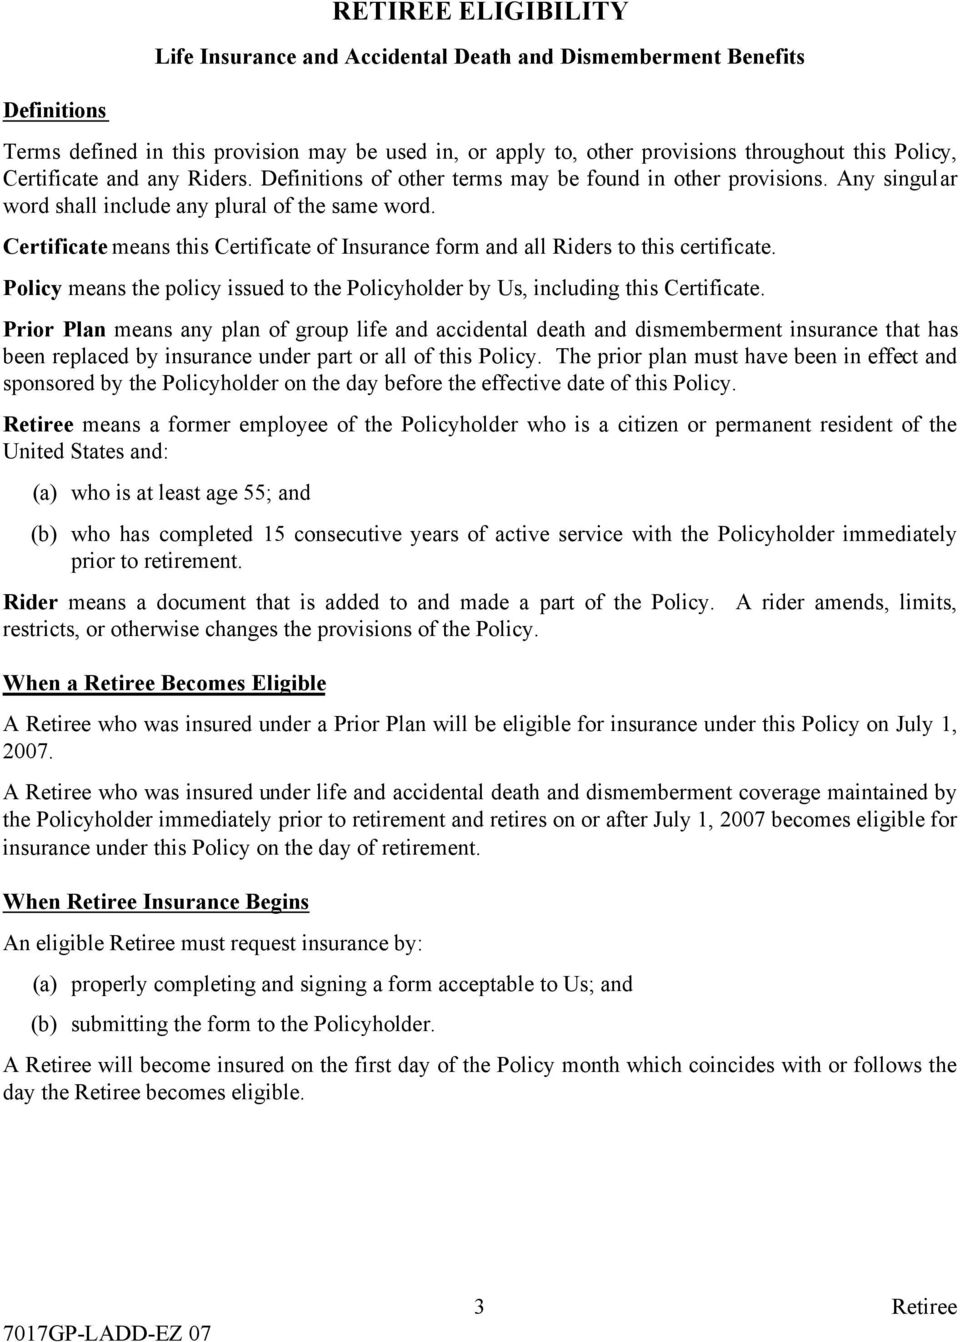 Certificate means this Certificate of Insurance form and all Riders to this certificate. Policy means the policy issued to the Policyholder by Us, including this Certificate.